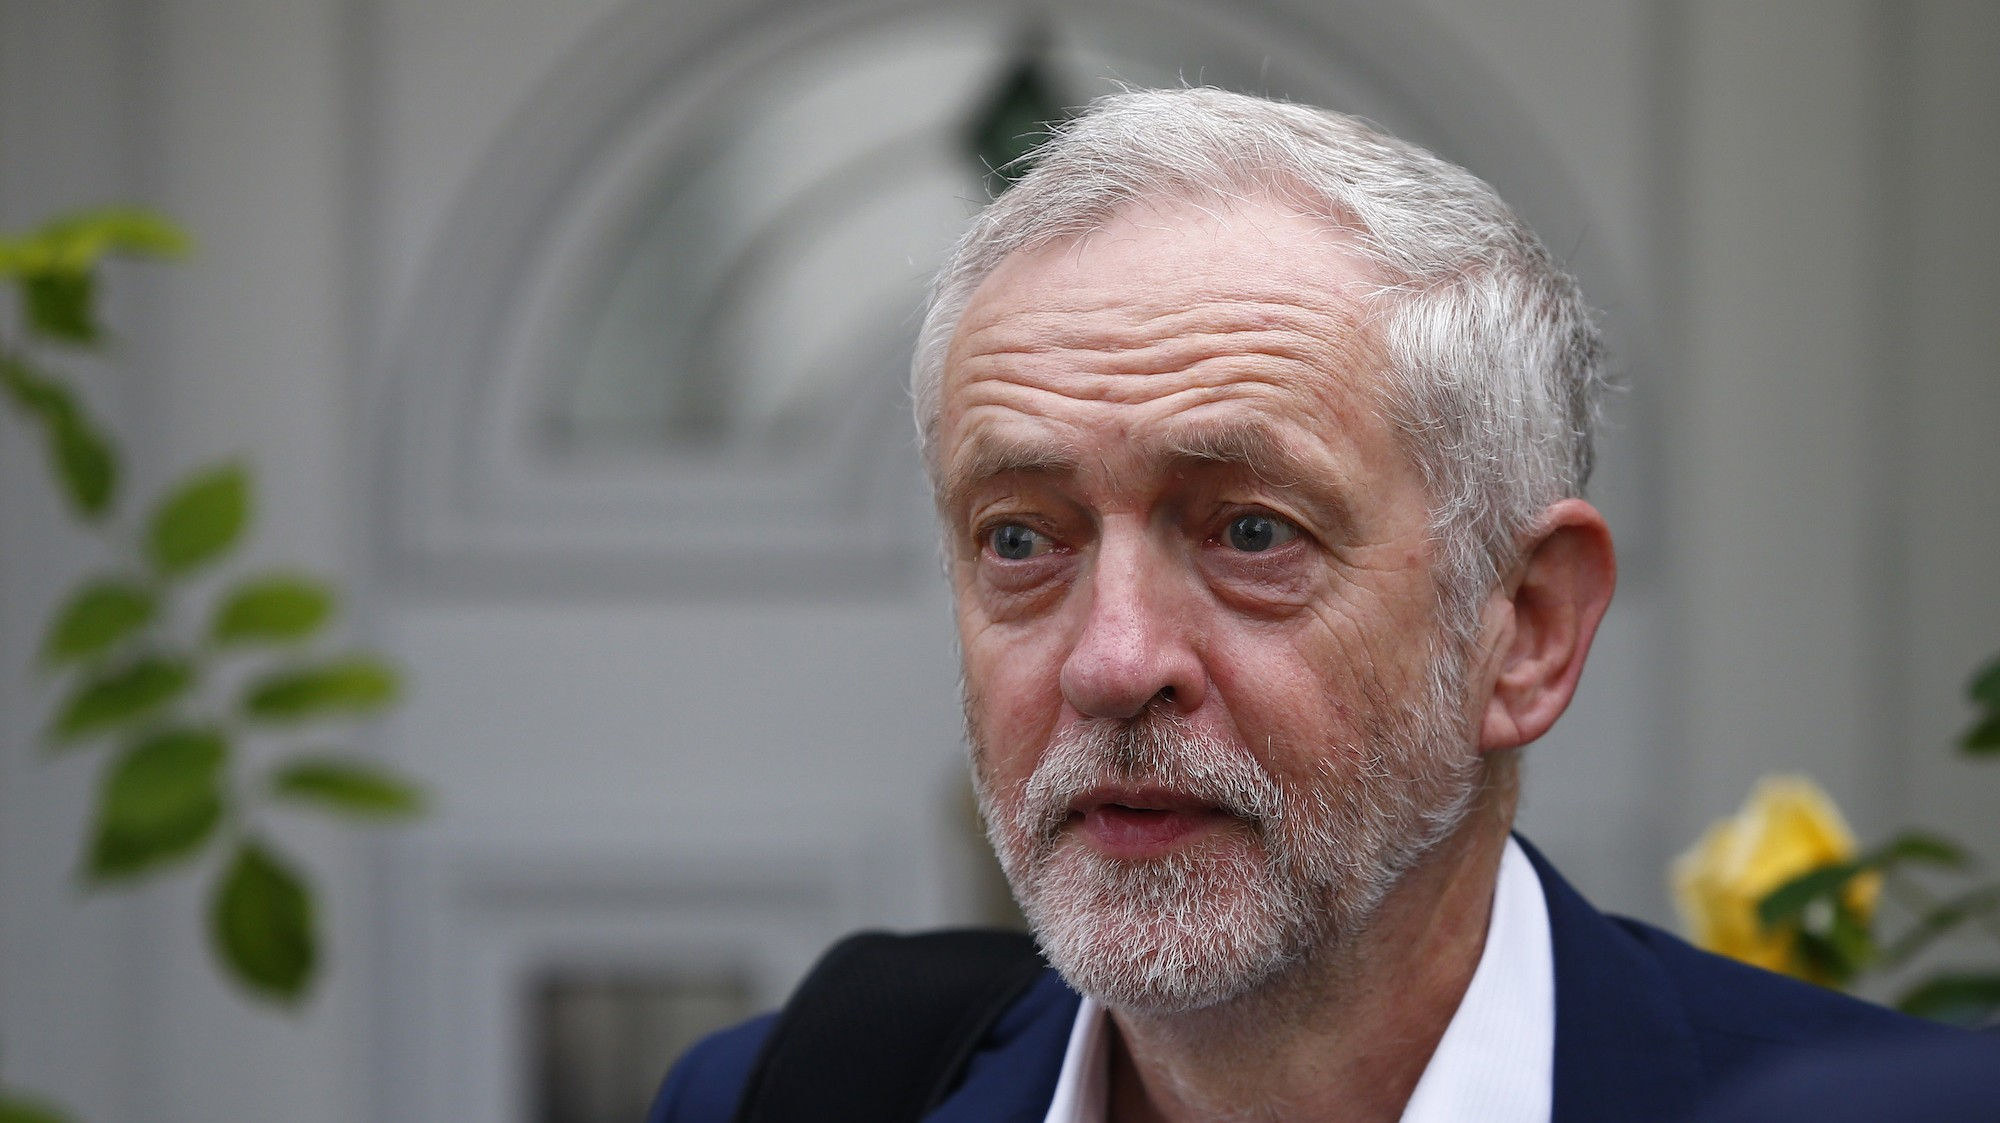 Jeremy Corbyn refuses to resign after Brexit — but his party might force him out